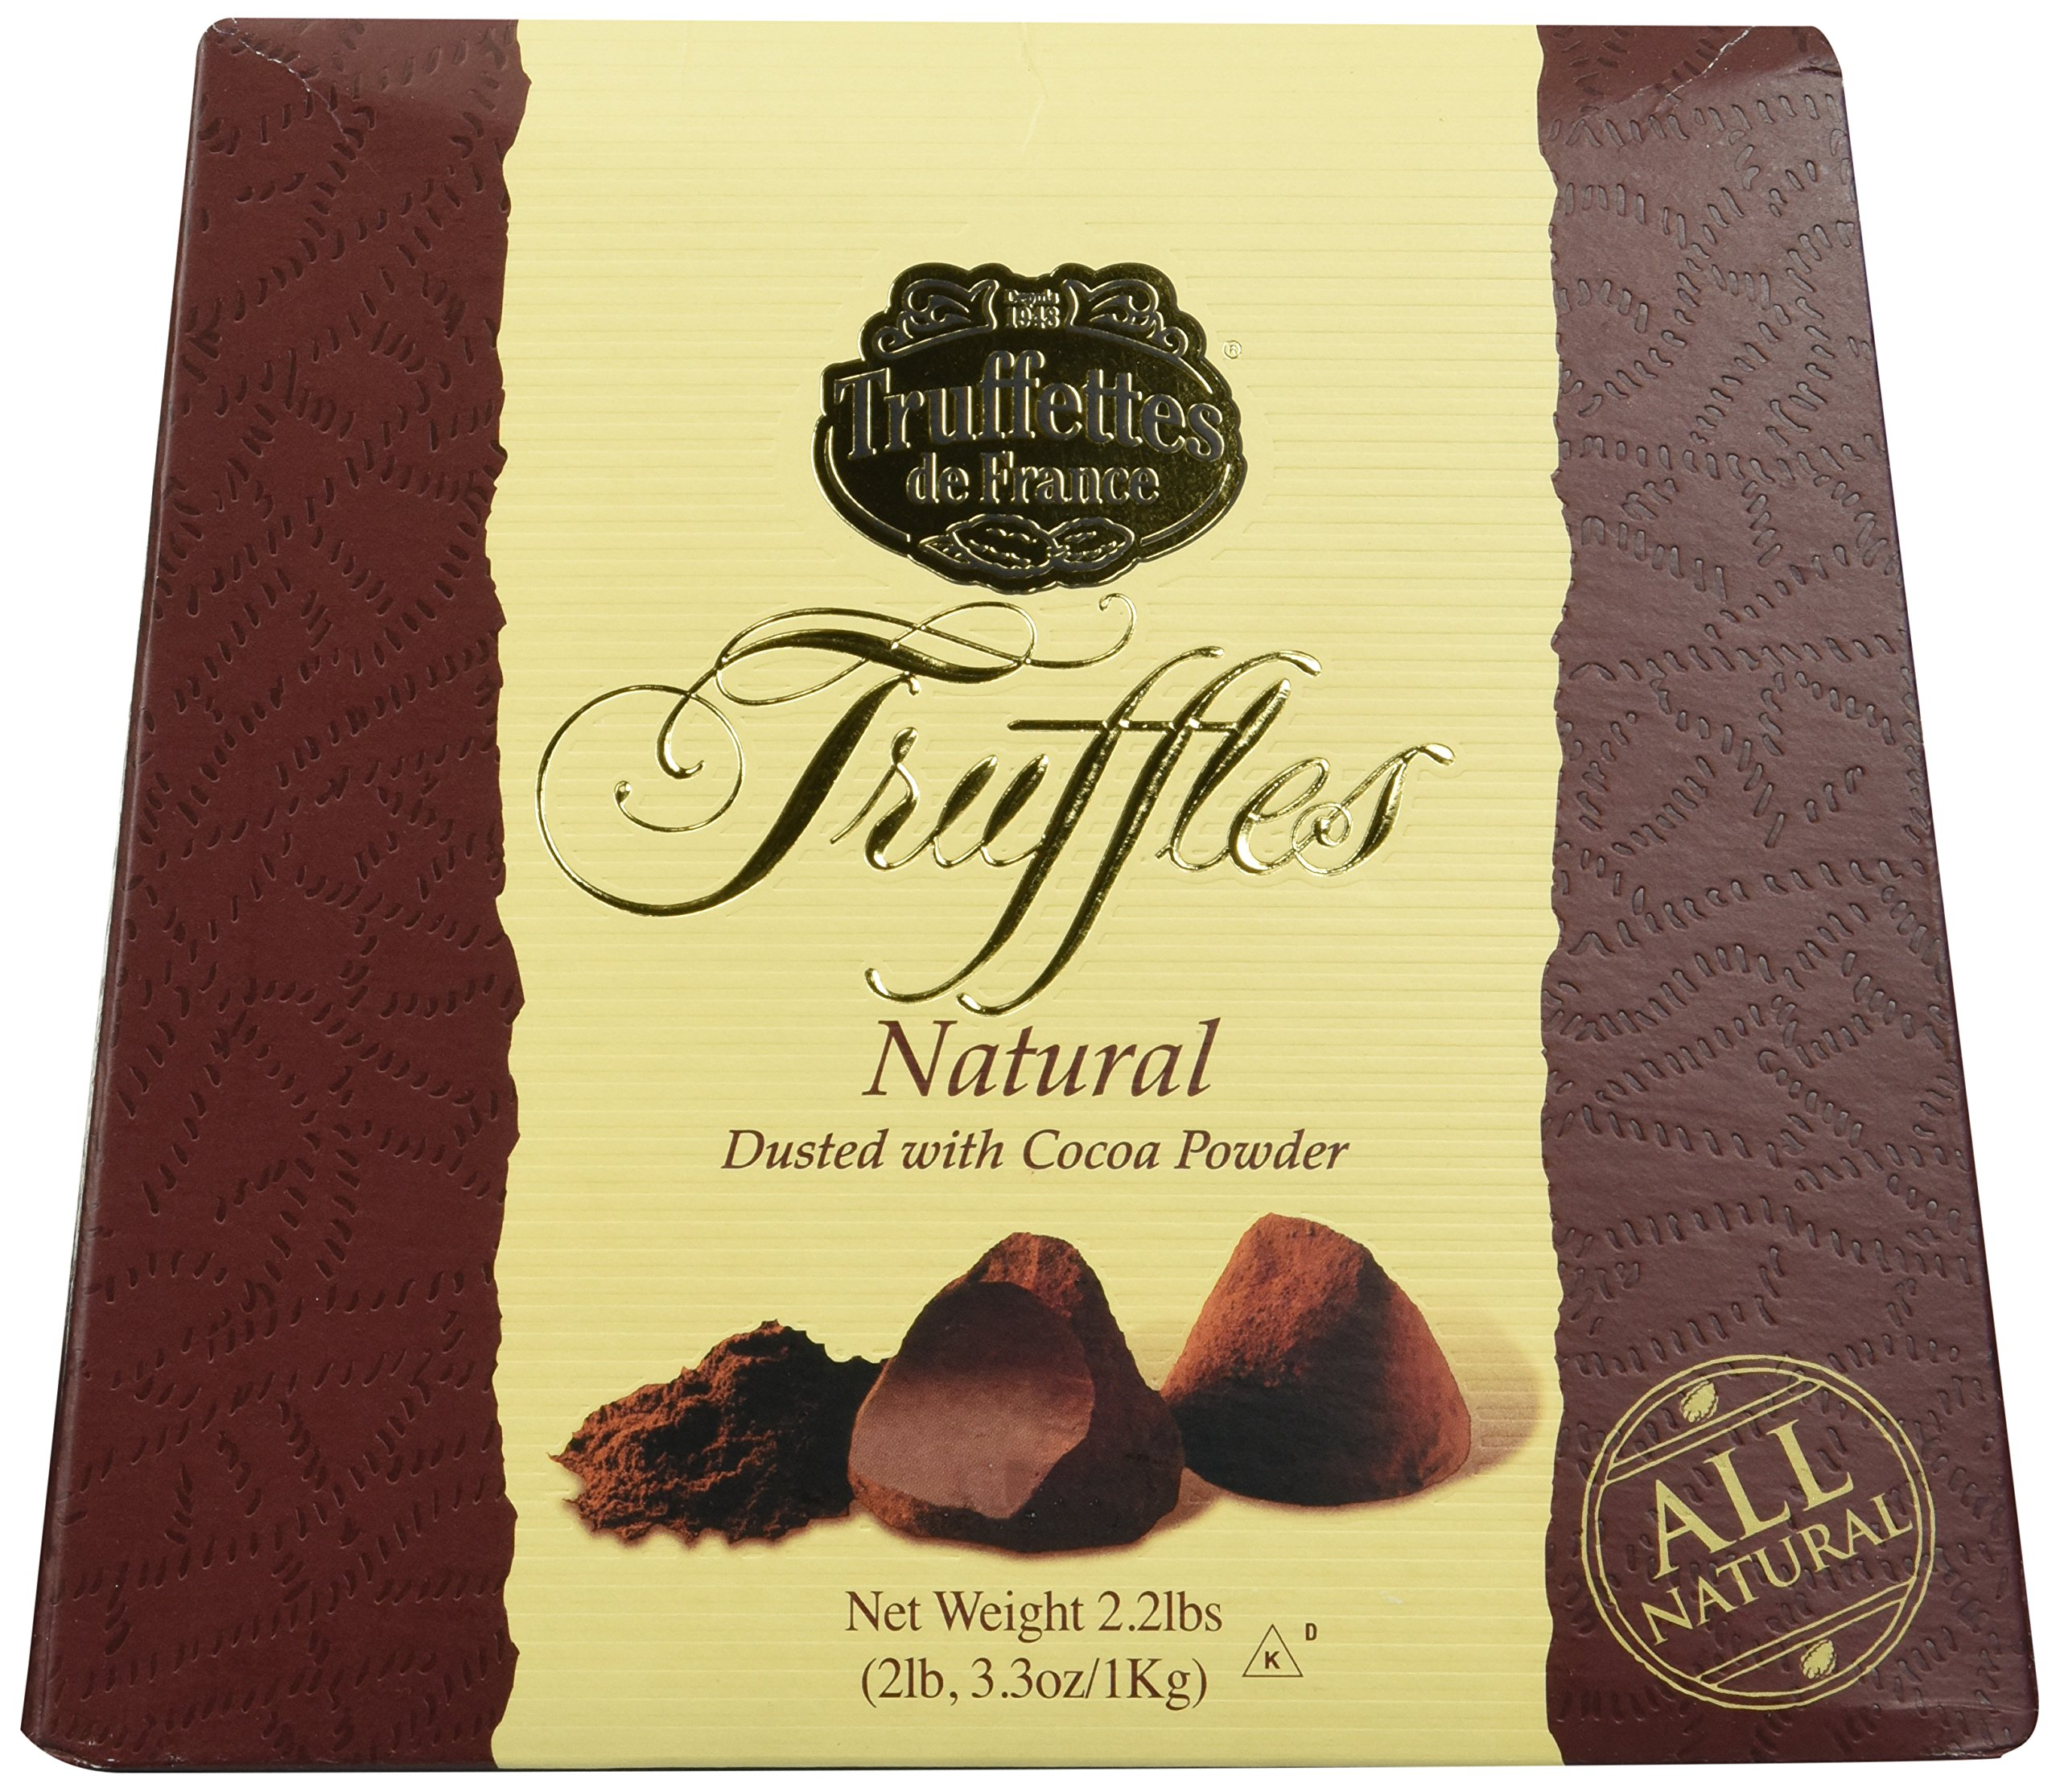 Chocmod Truffettes de France 2.2lbs (1Kg) All Natural Truffles in a Elegant Gift Box by Chocmod